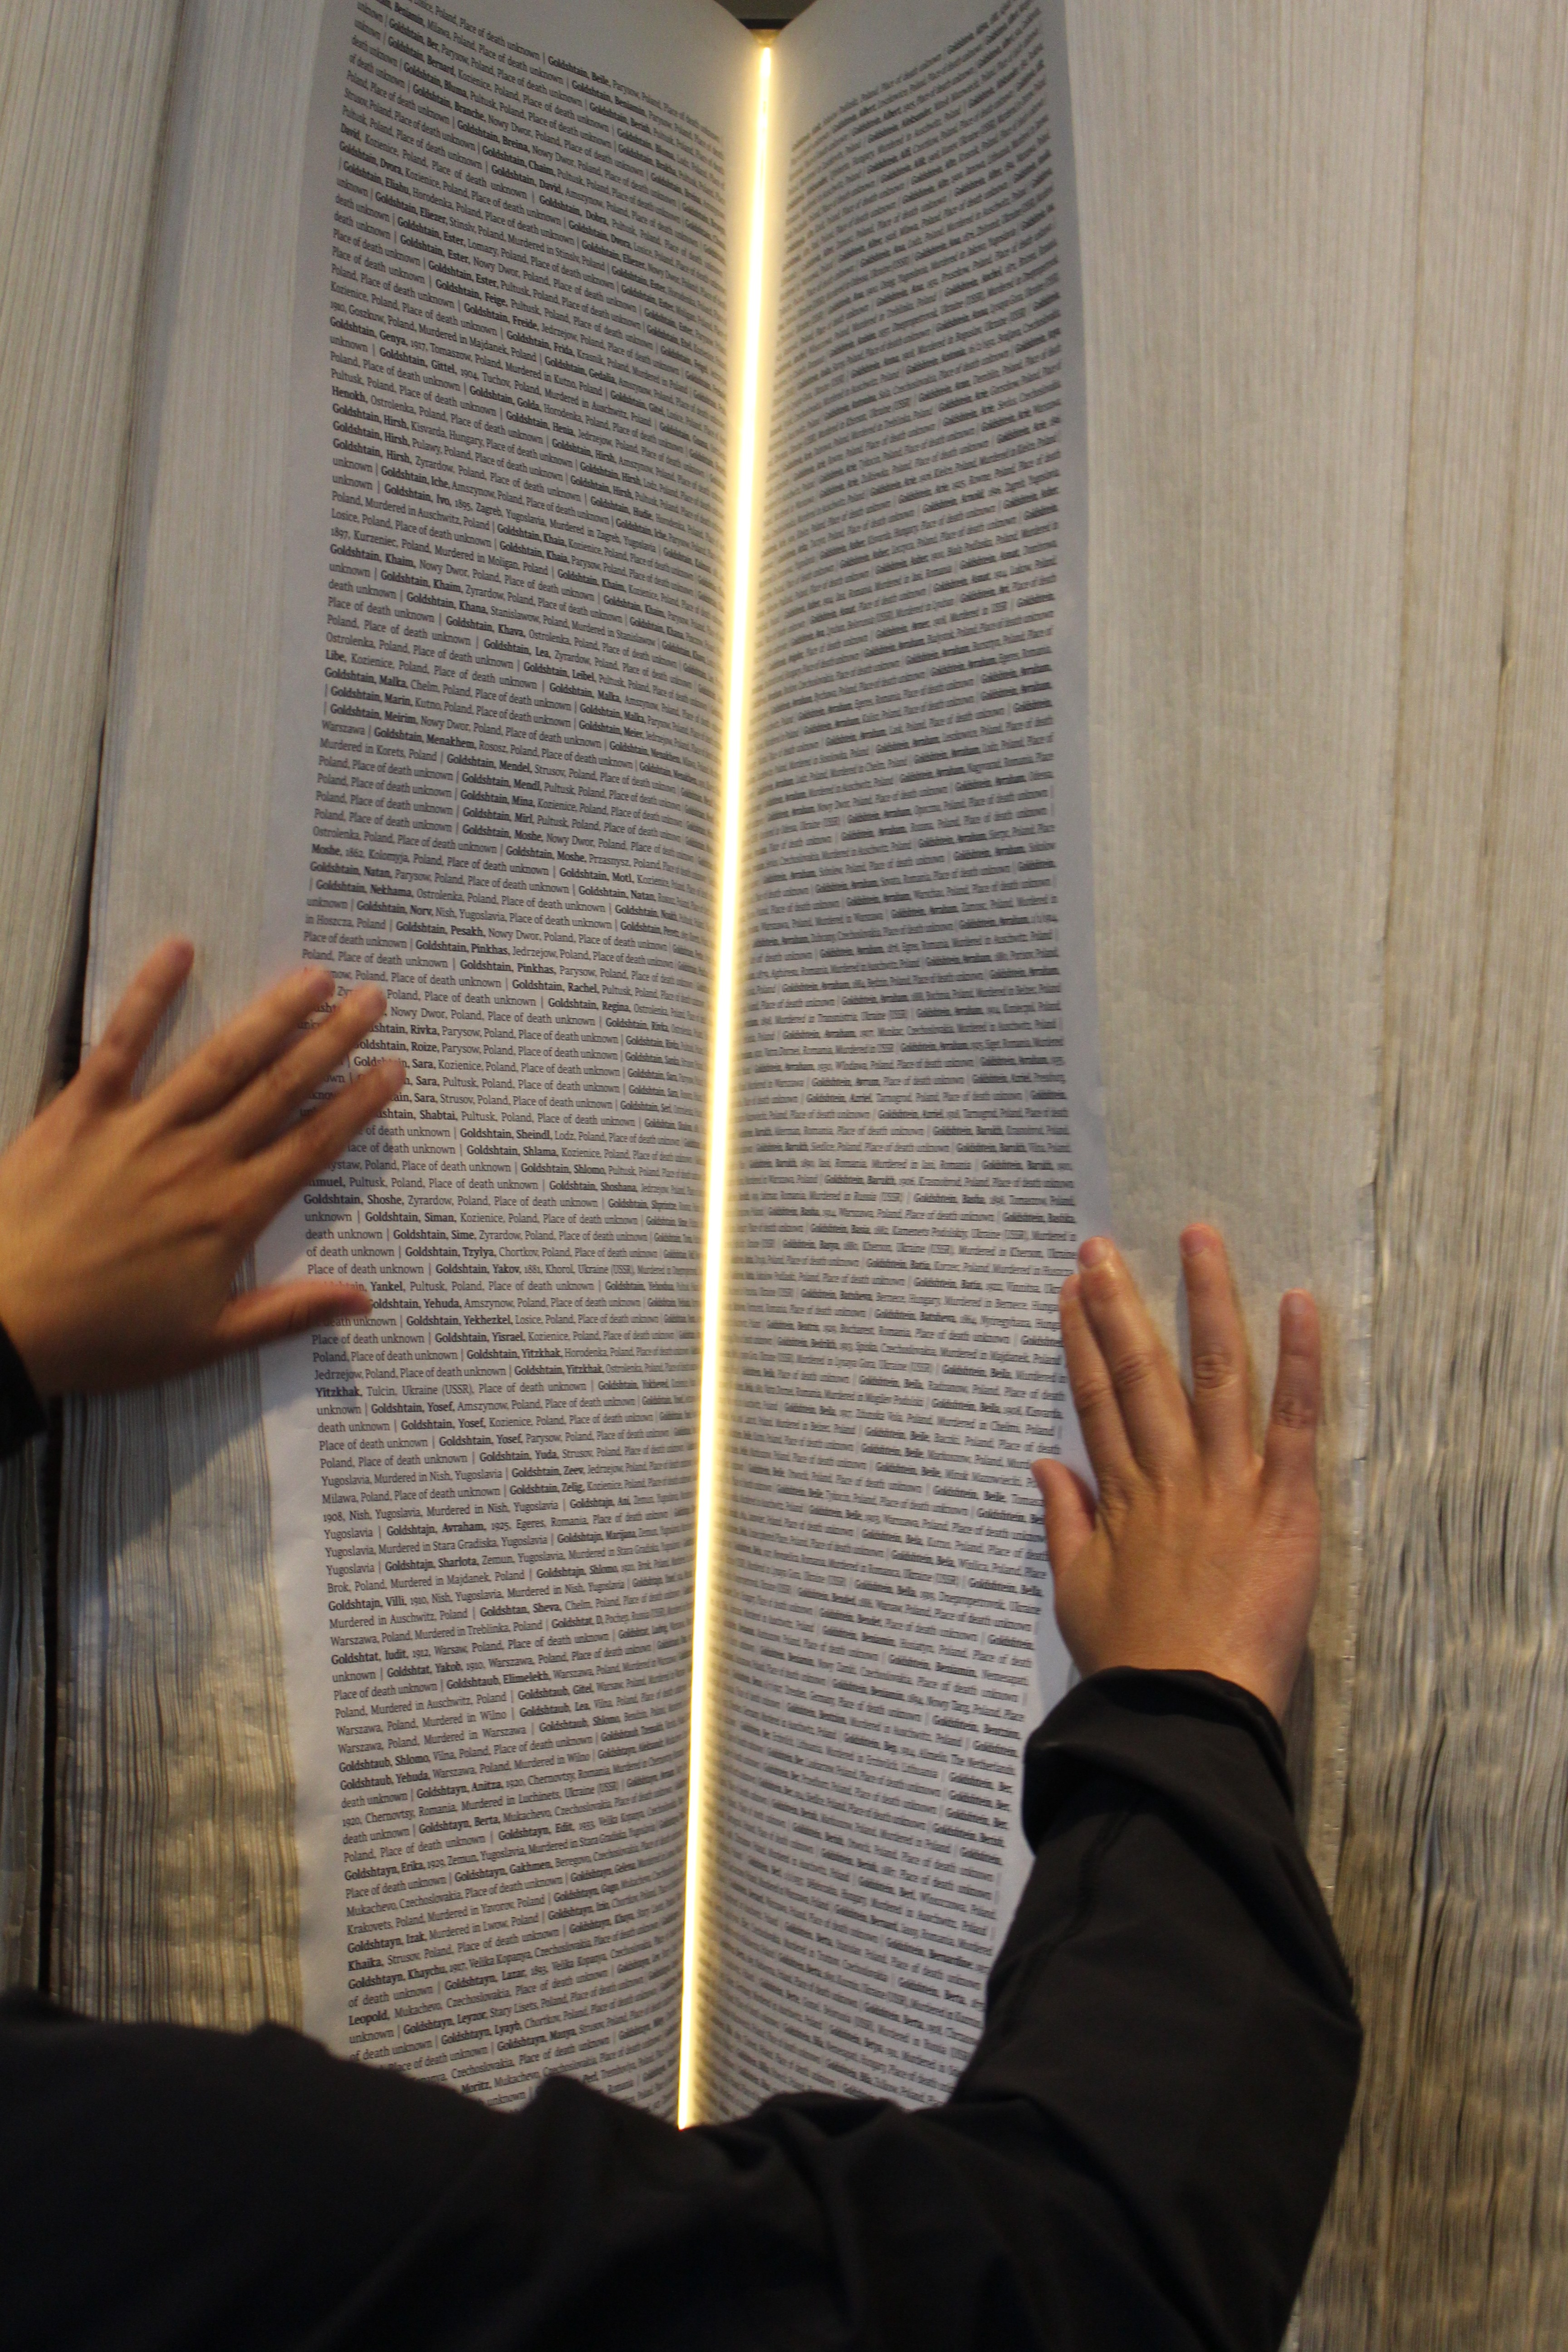 Pages of the Book of Names in Auschwitz I